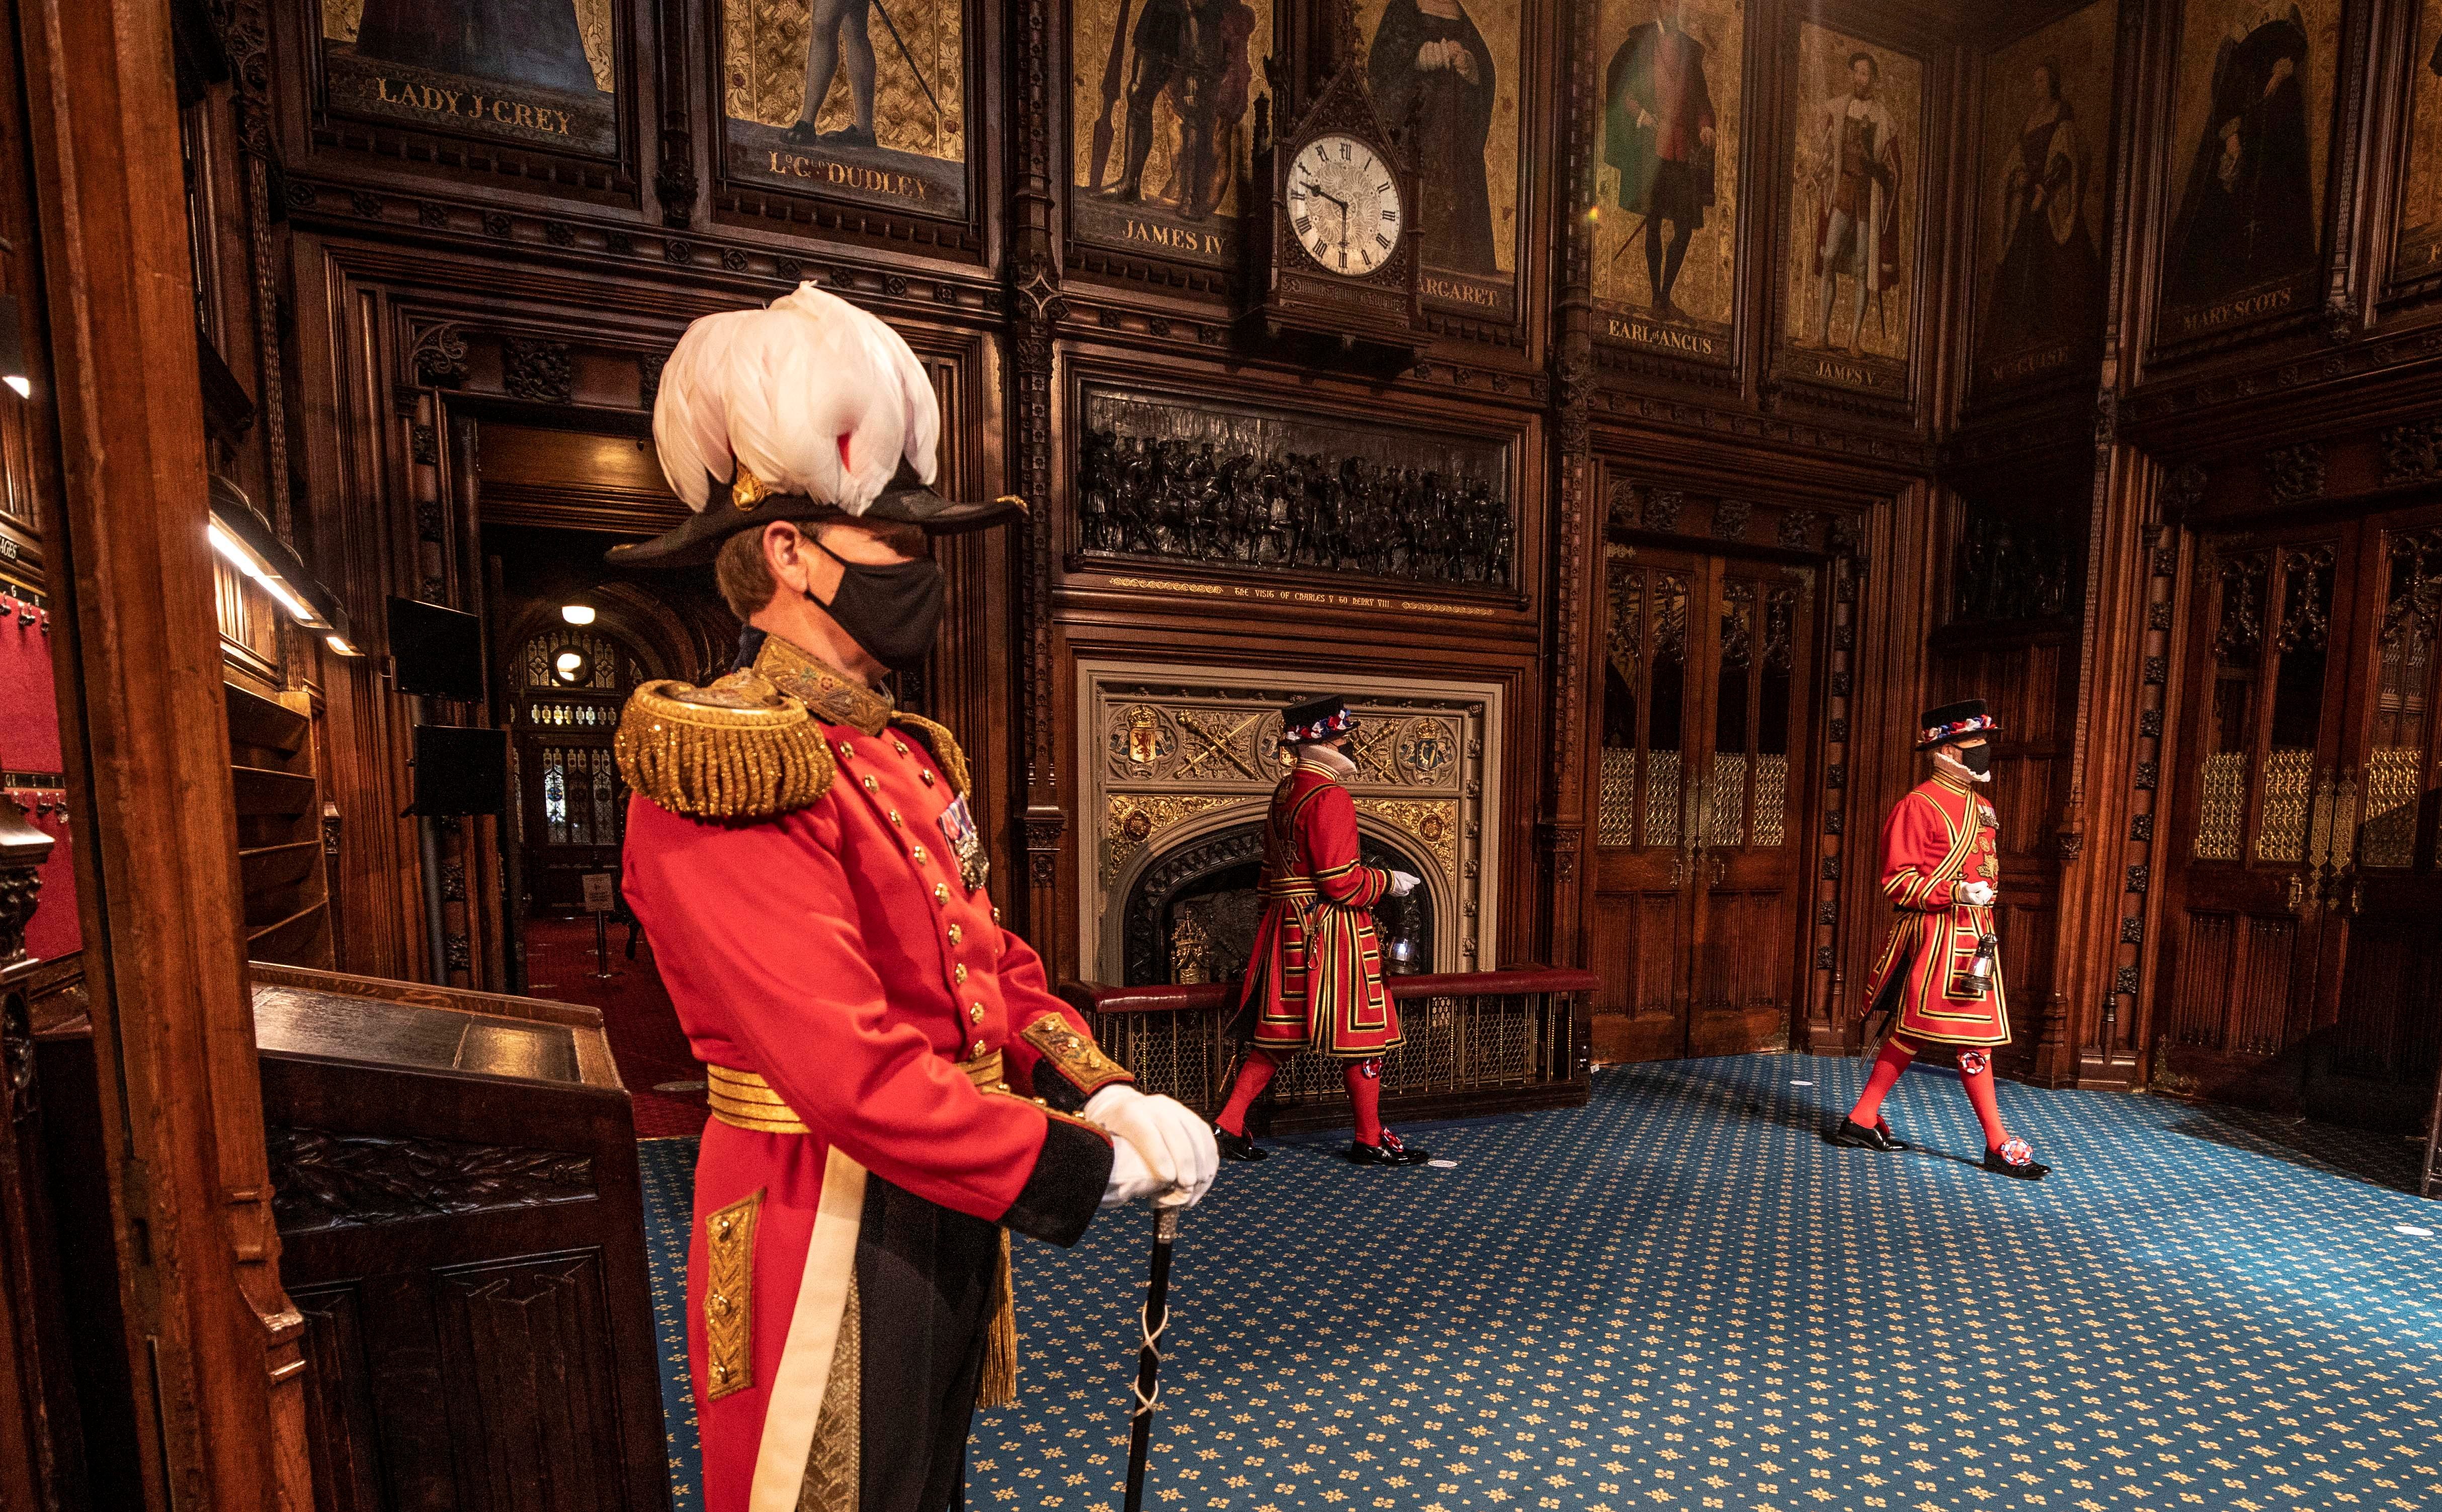 Yeoman Warders march into the Prince's chamber during the reduced ceremonial search which is the opening event of the annual State Opening of Parliament in London, Britain May 11, 2021. Richard Pohle/Pool via REUTERS